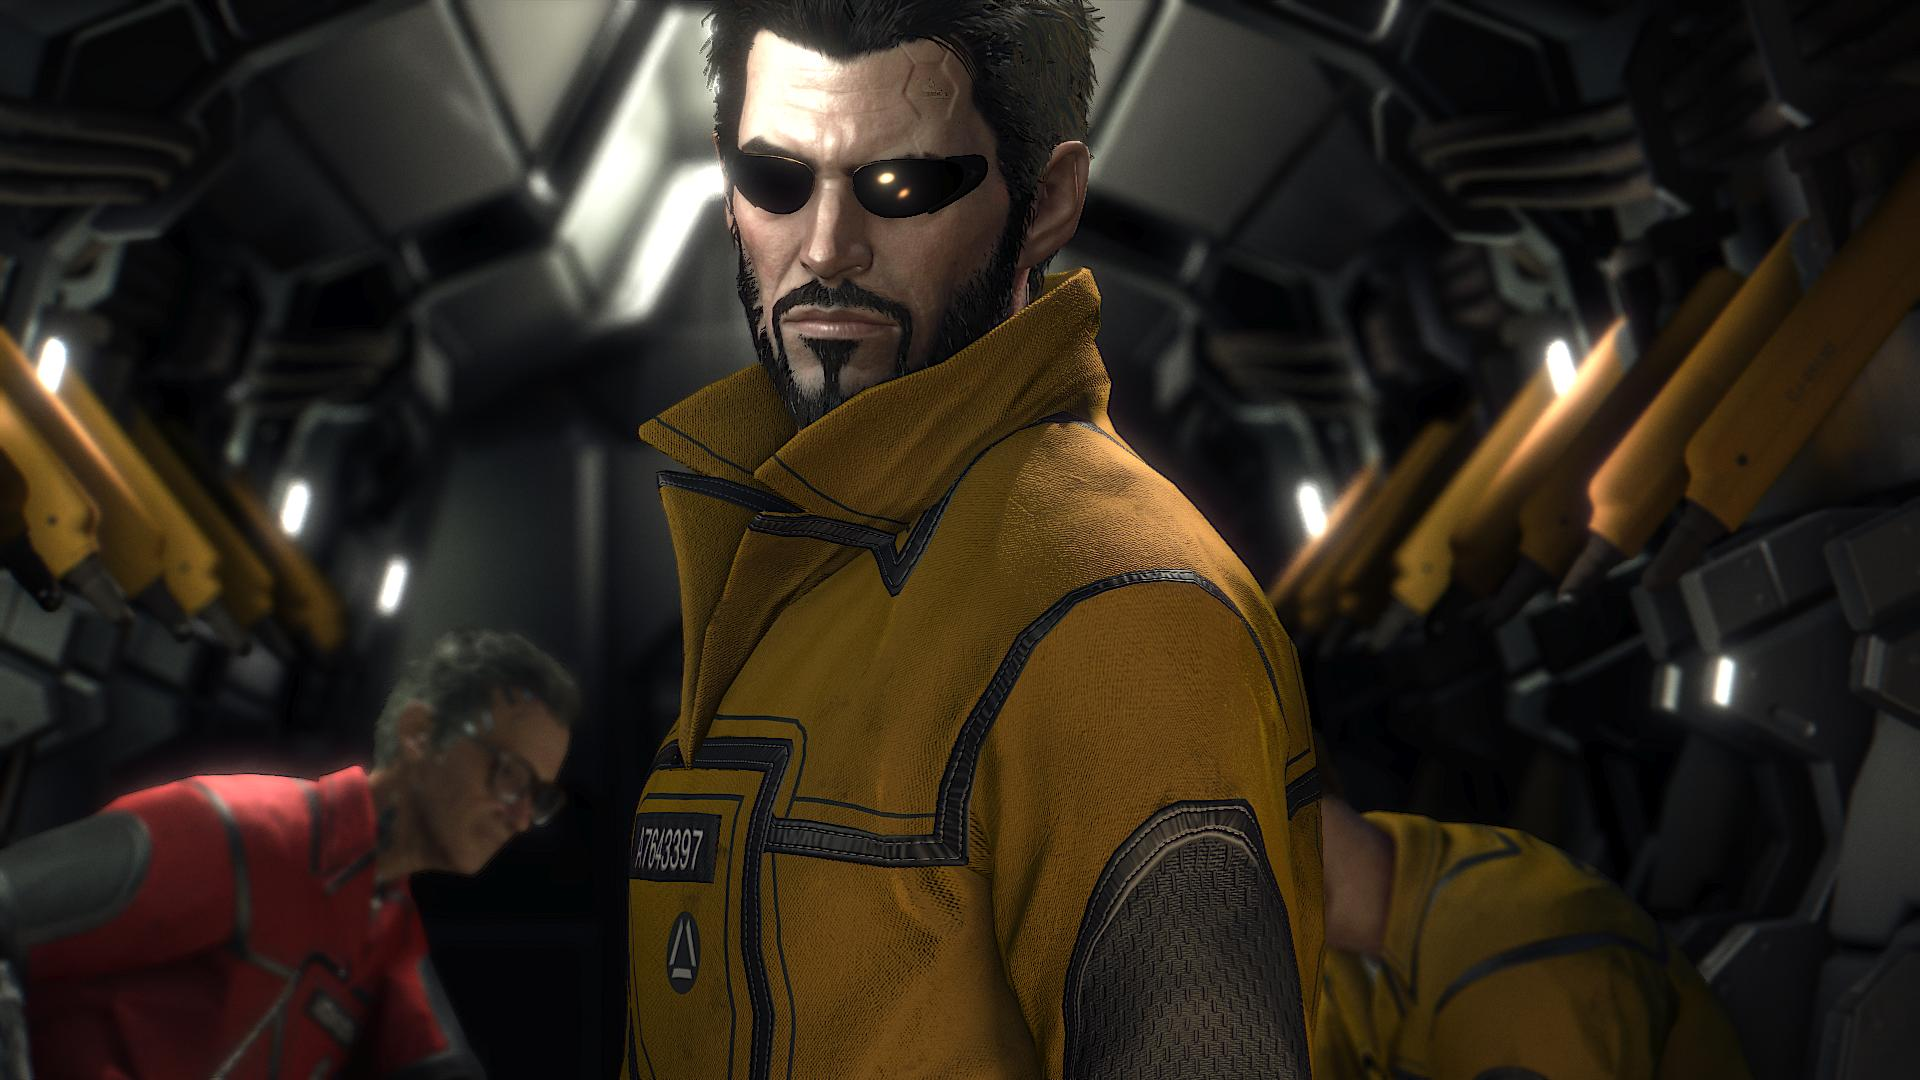 000425.Jpg - Deus Ex: Mankind Divided